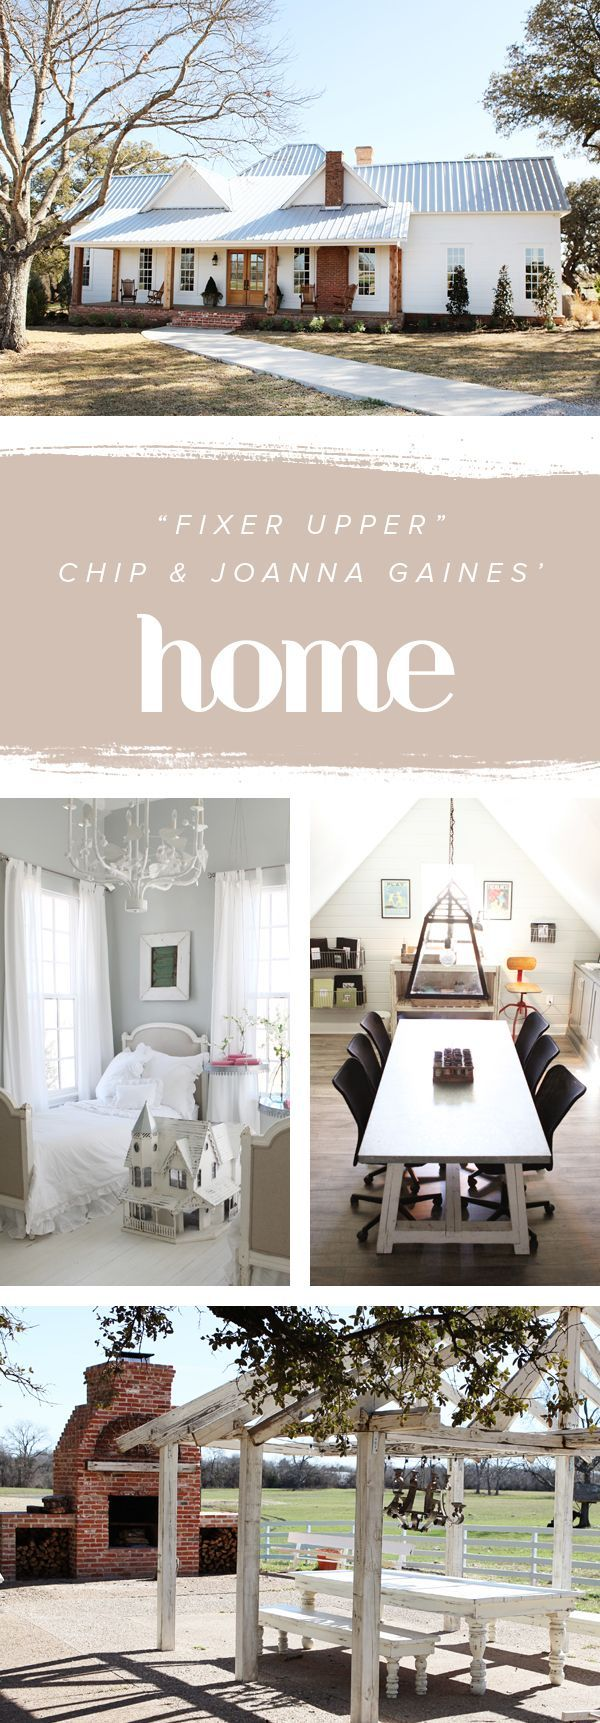 Tour Chip and Joanna Gaines' very own 'Fixer Upper' farmhouse